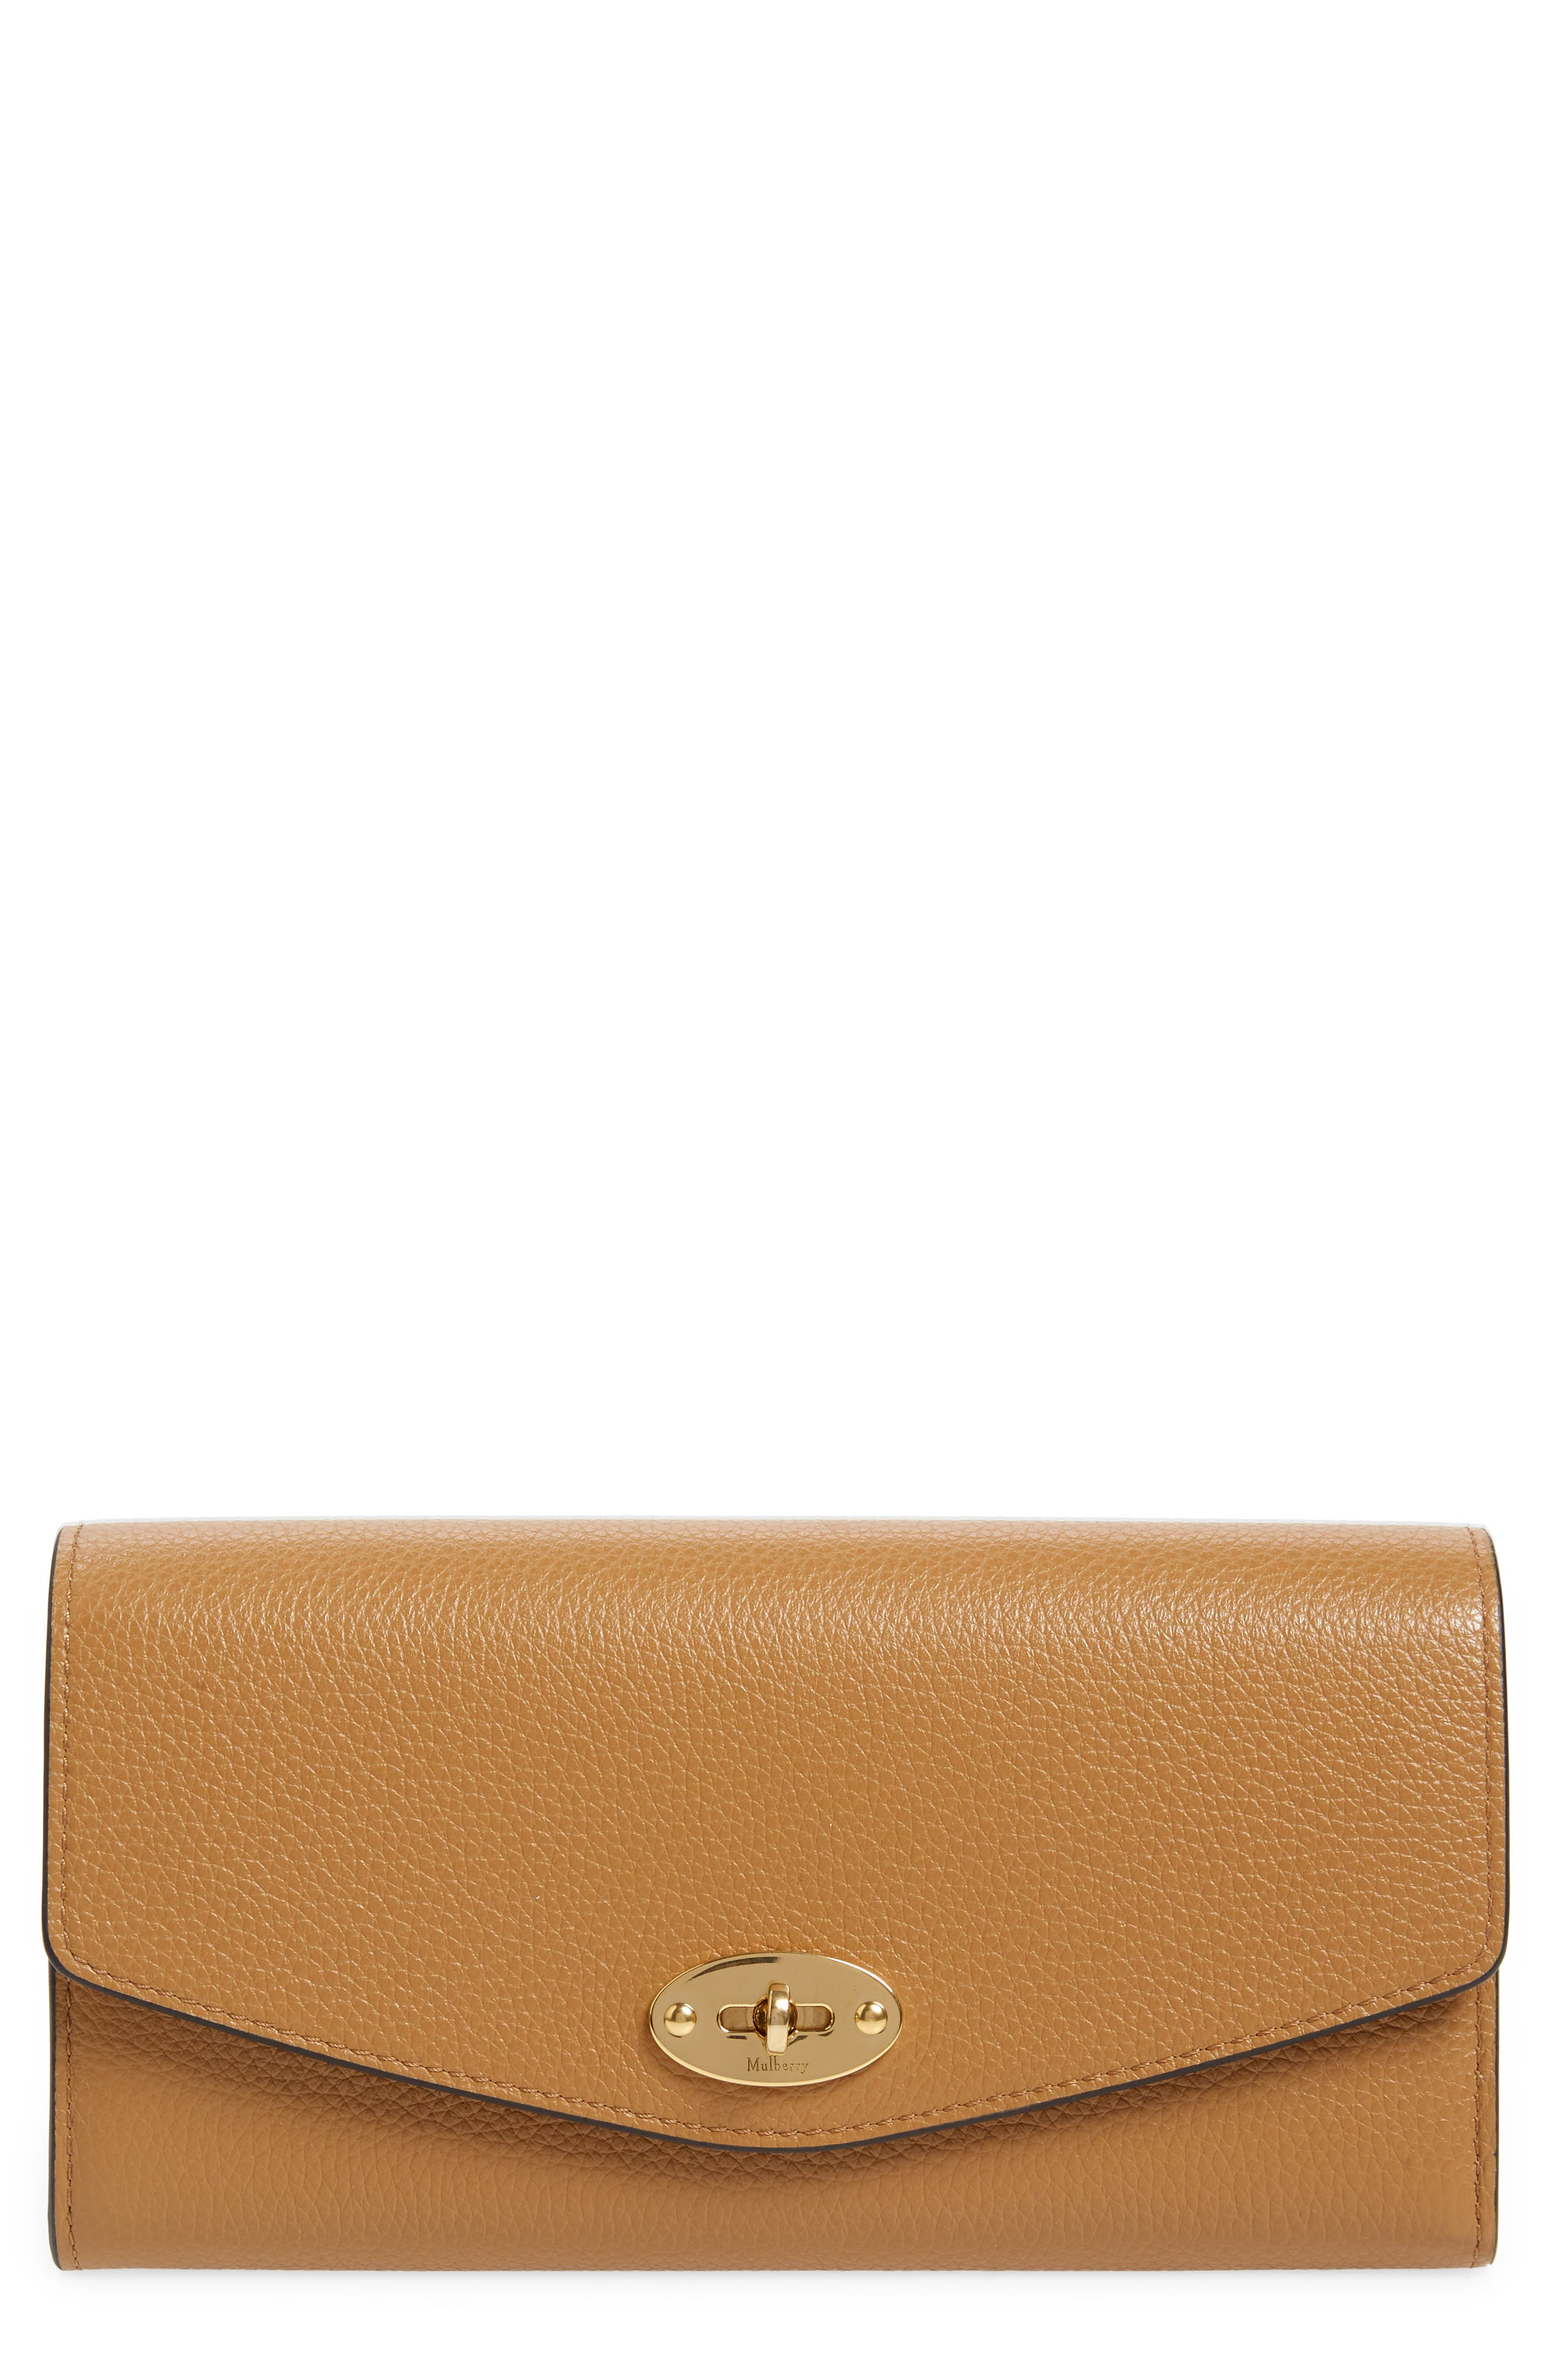 Mulberry Darley Continental Leather Wallet | Nordstrom